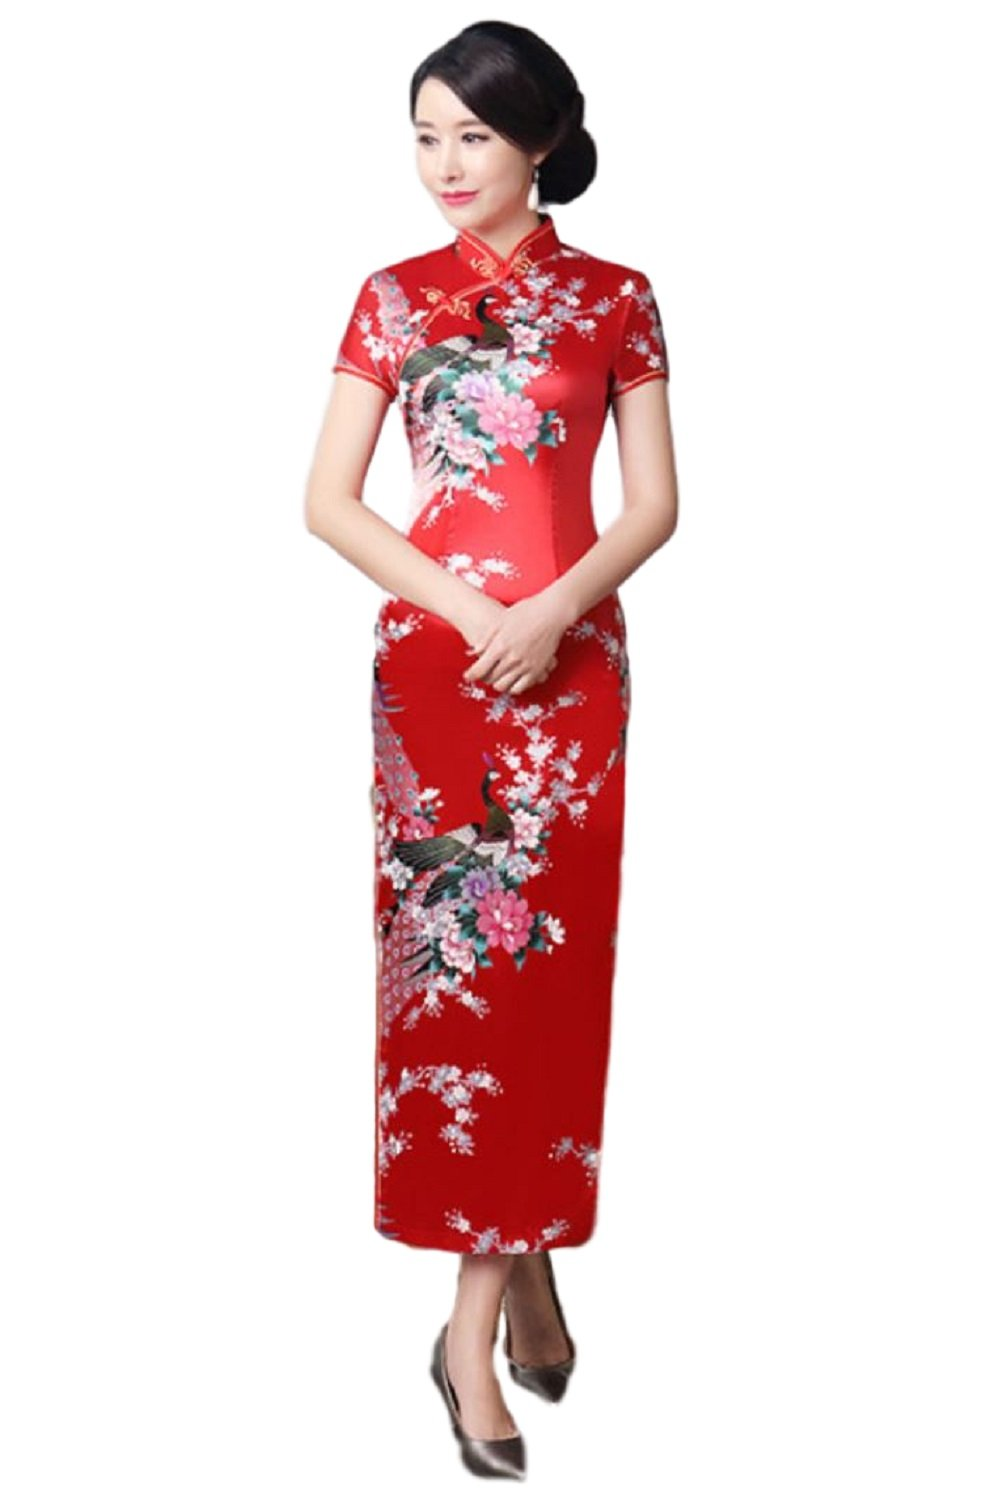 hideaway Women's Long Chinese Dress Cheongsam [White/Purple/Black/Red] Mandarin Gown Qipao China Dress